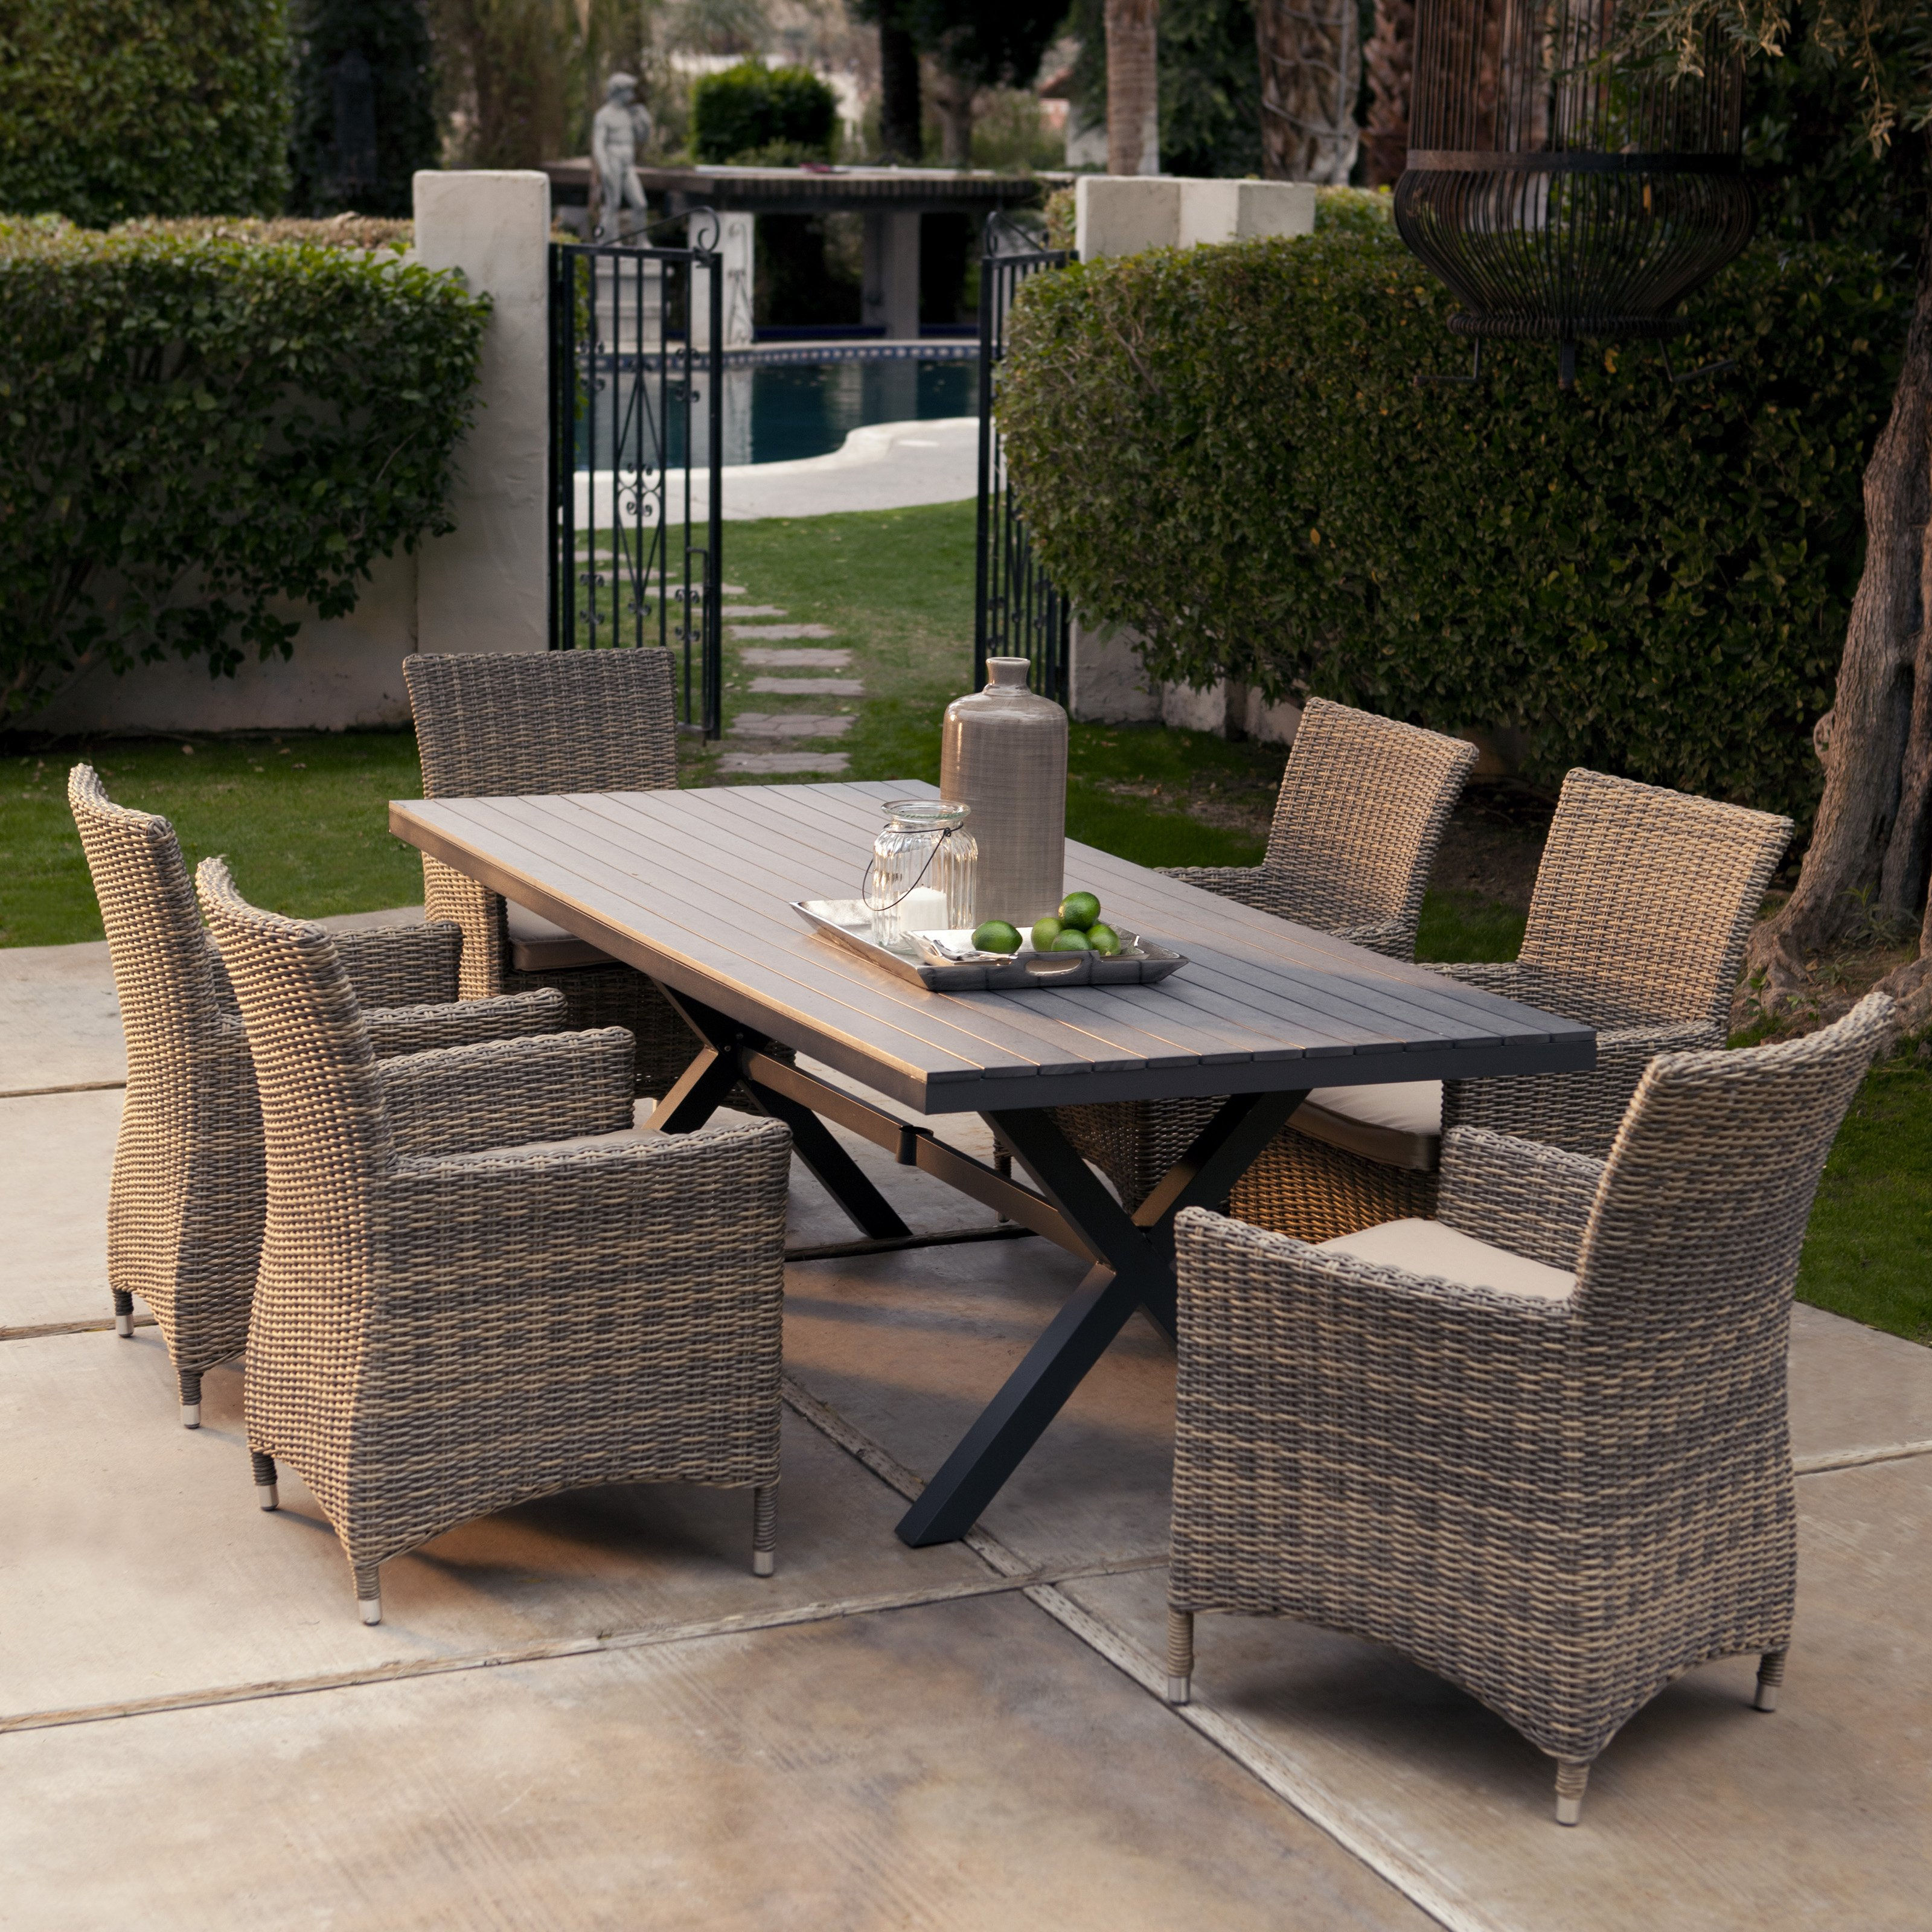 Furniture Fabulous Outdoor Patio Resin Wicker Rattan within sizing 3200 X 3200